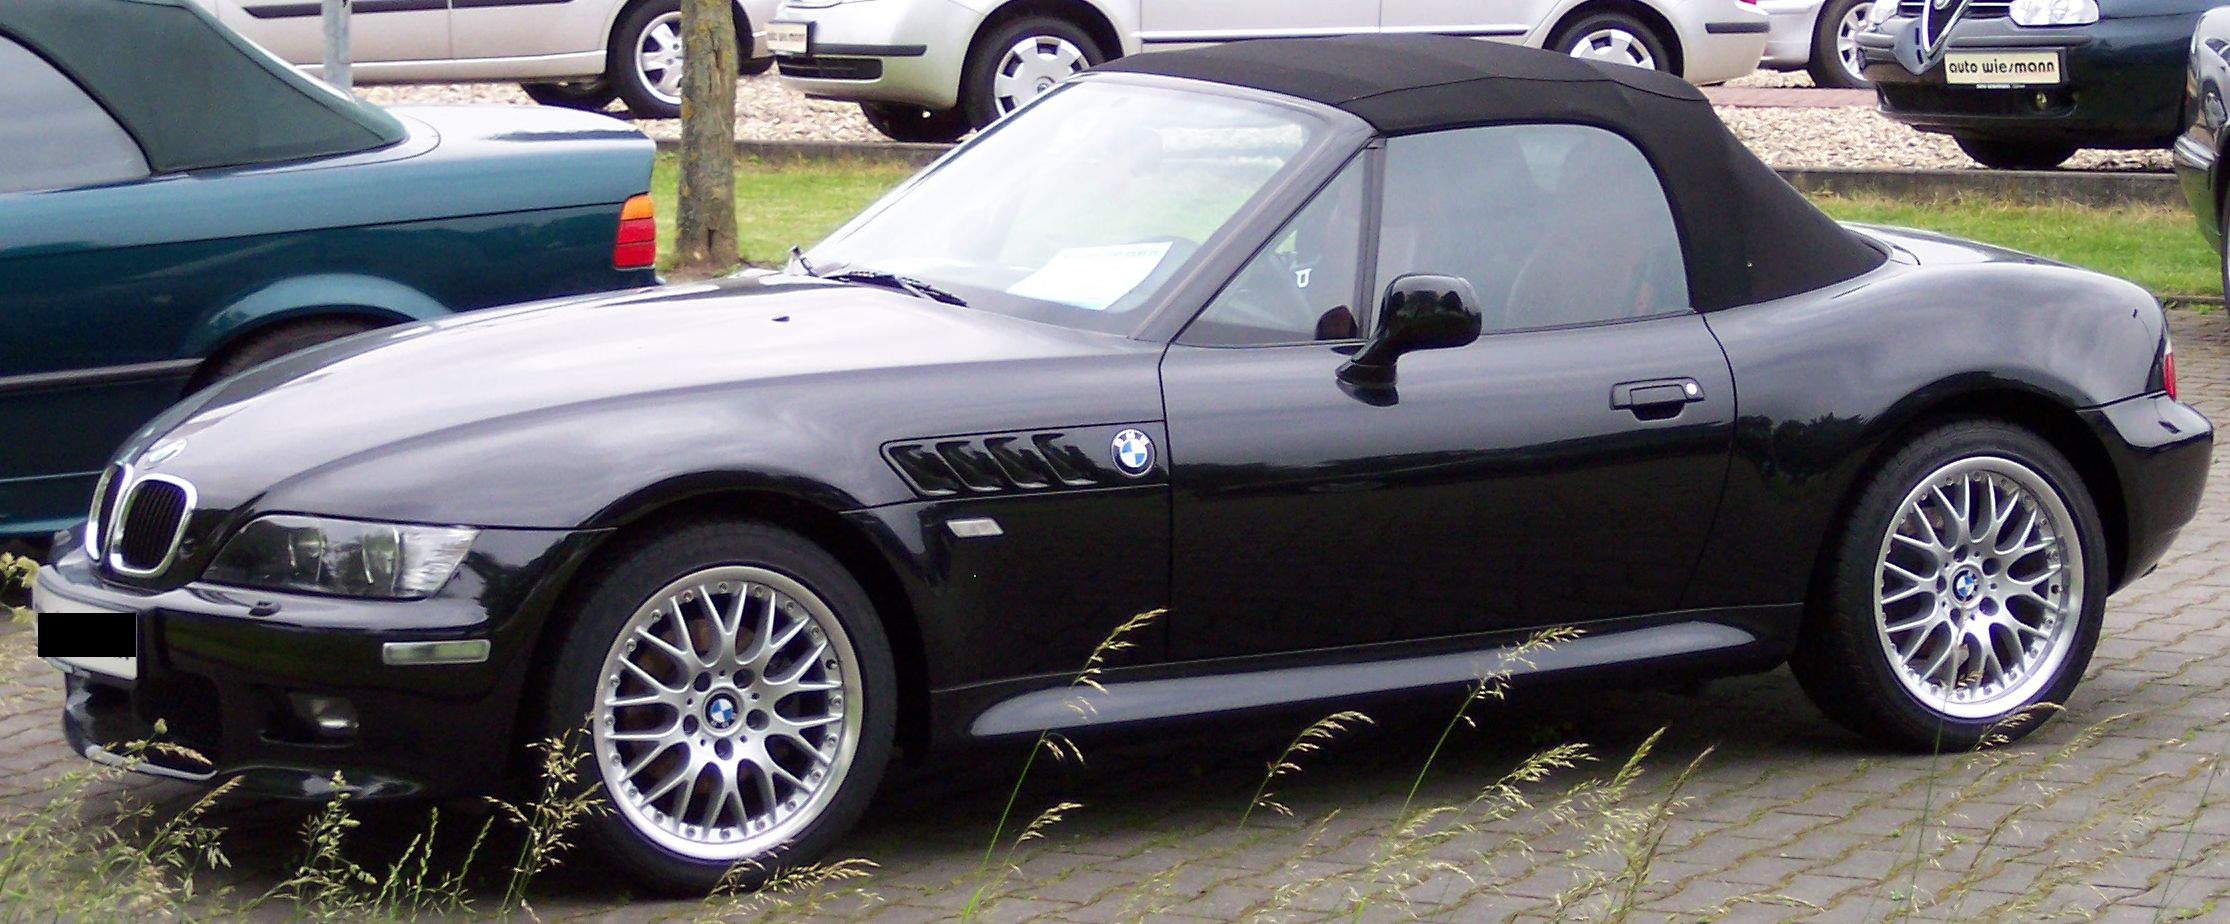 File Bmw Z3 Black Vl Jpg Wikimedia Commons